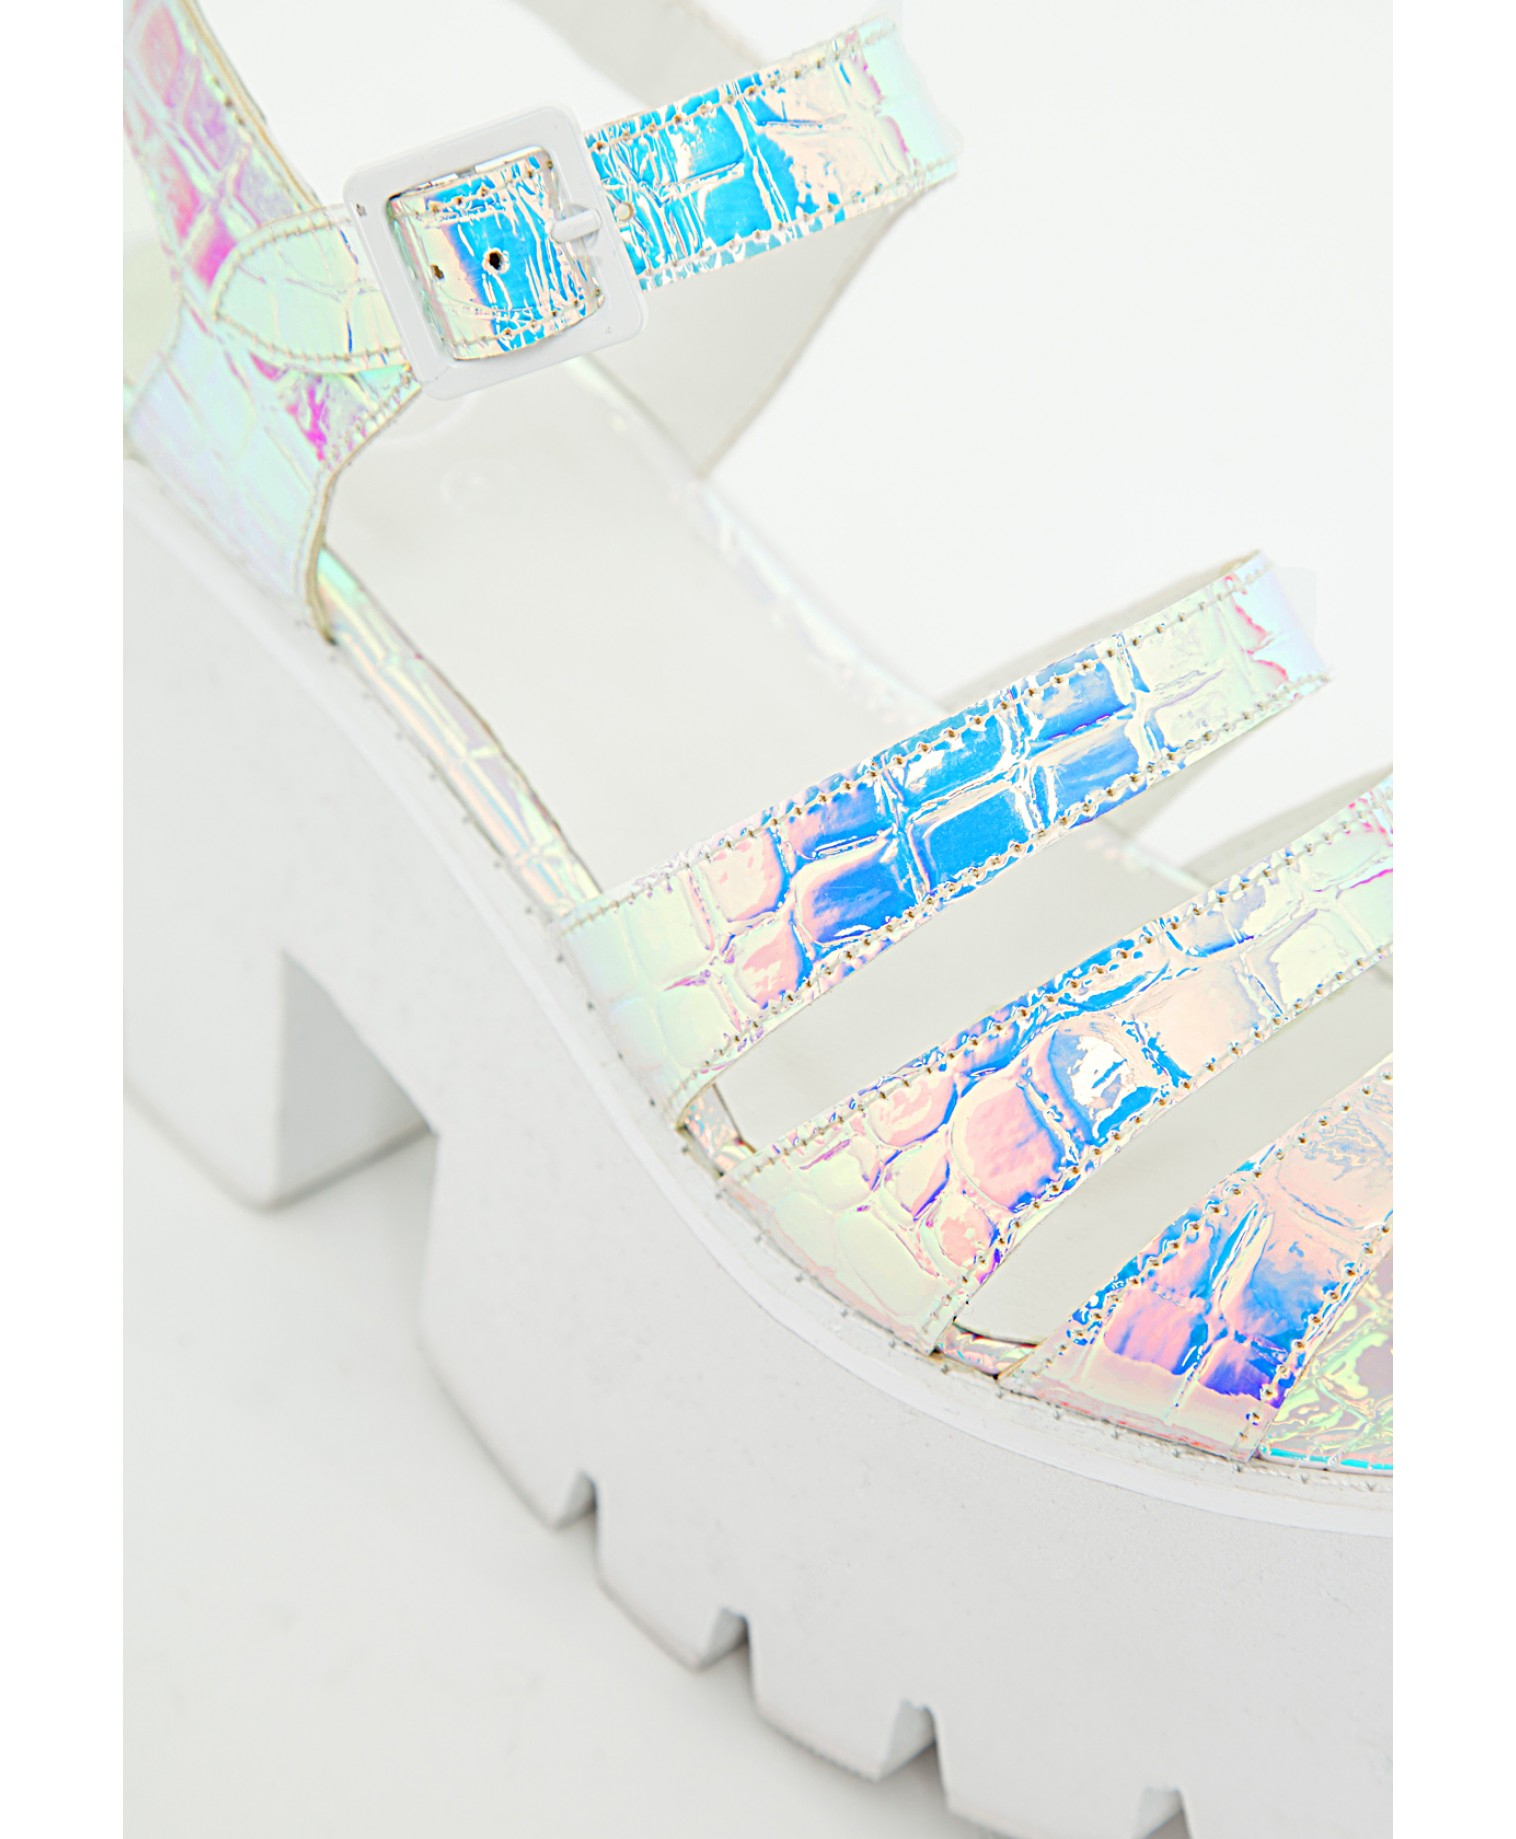 89a5caa8666 Lyst - Missguided Cleated Chunky Flatform Sandals Iridescent White ...